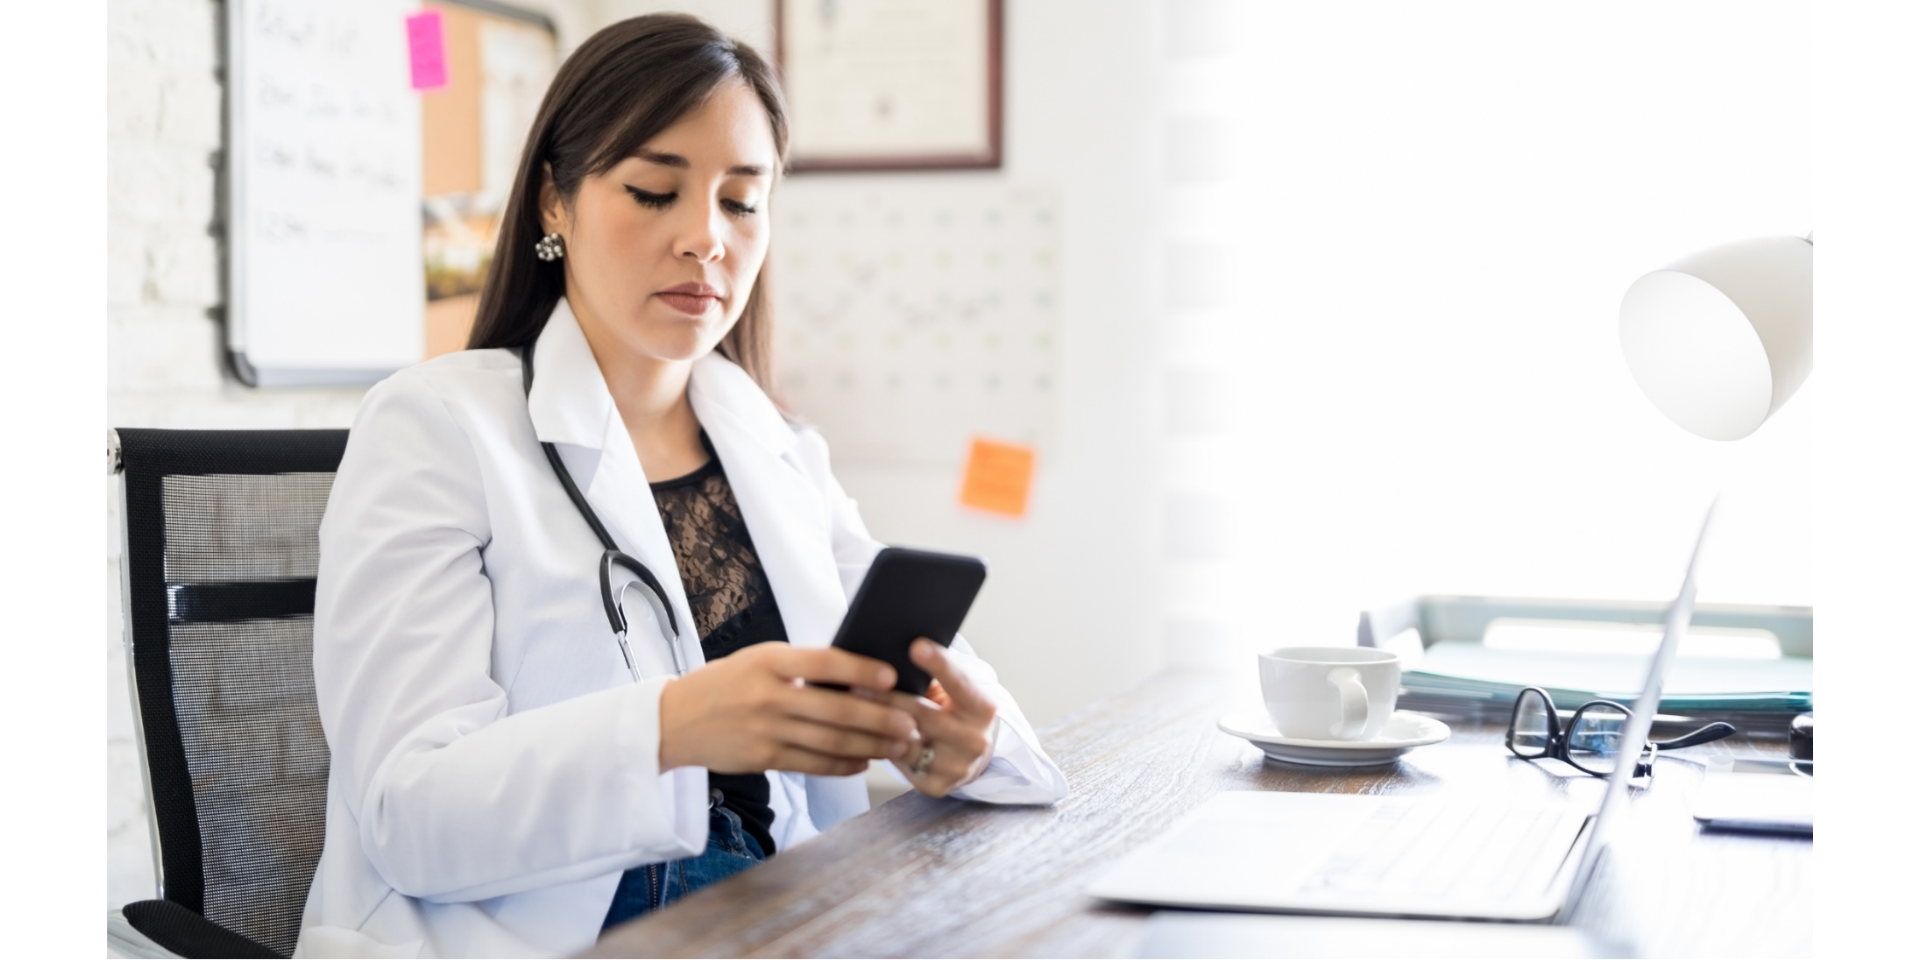 importance of networking in healthcare